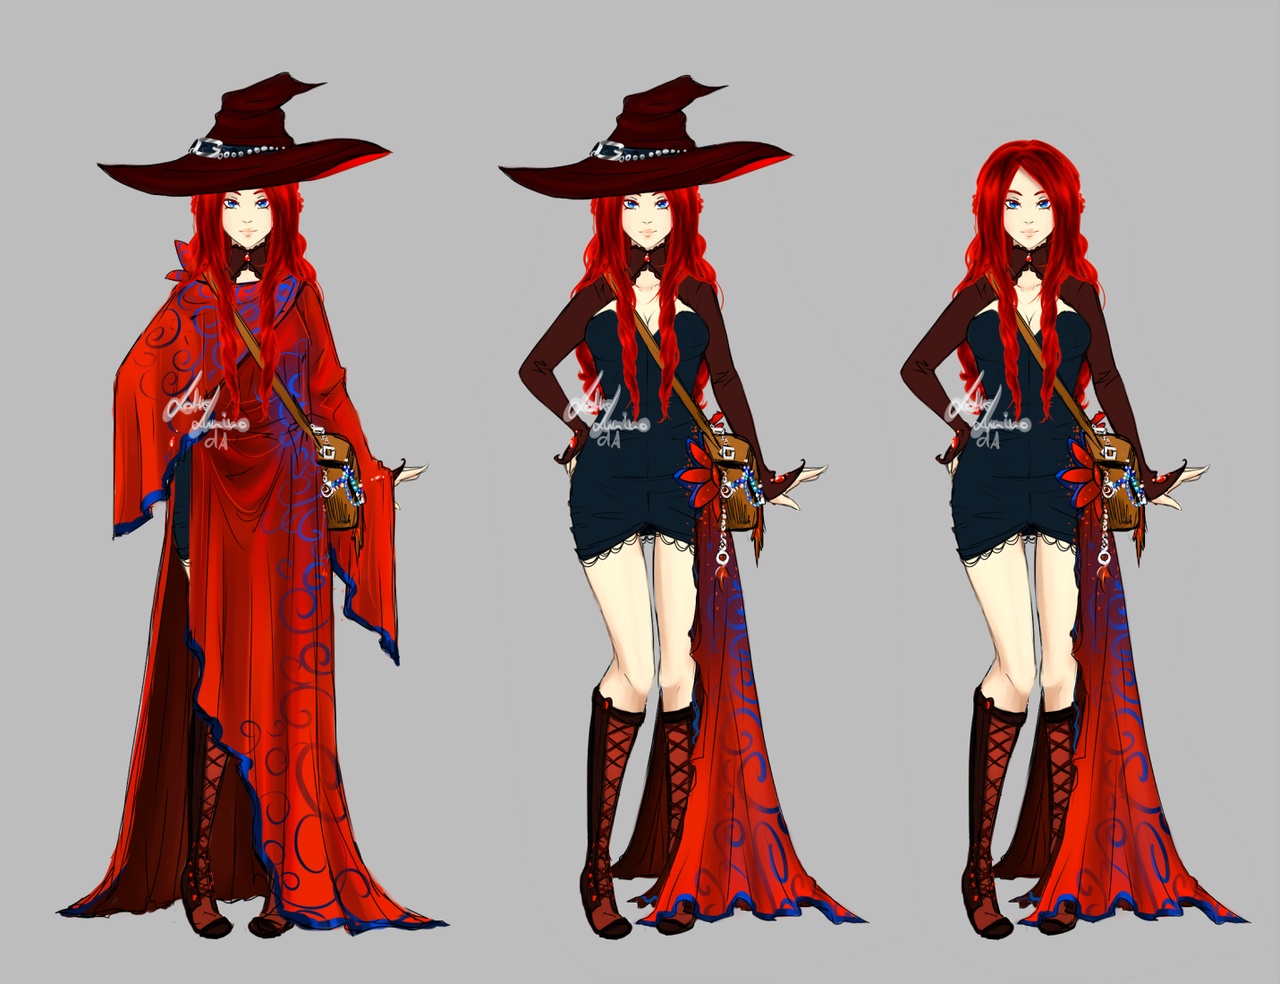 Nafiz - Fire sorceress by LotusLumino female witch wizard warlock ...